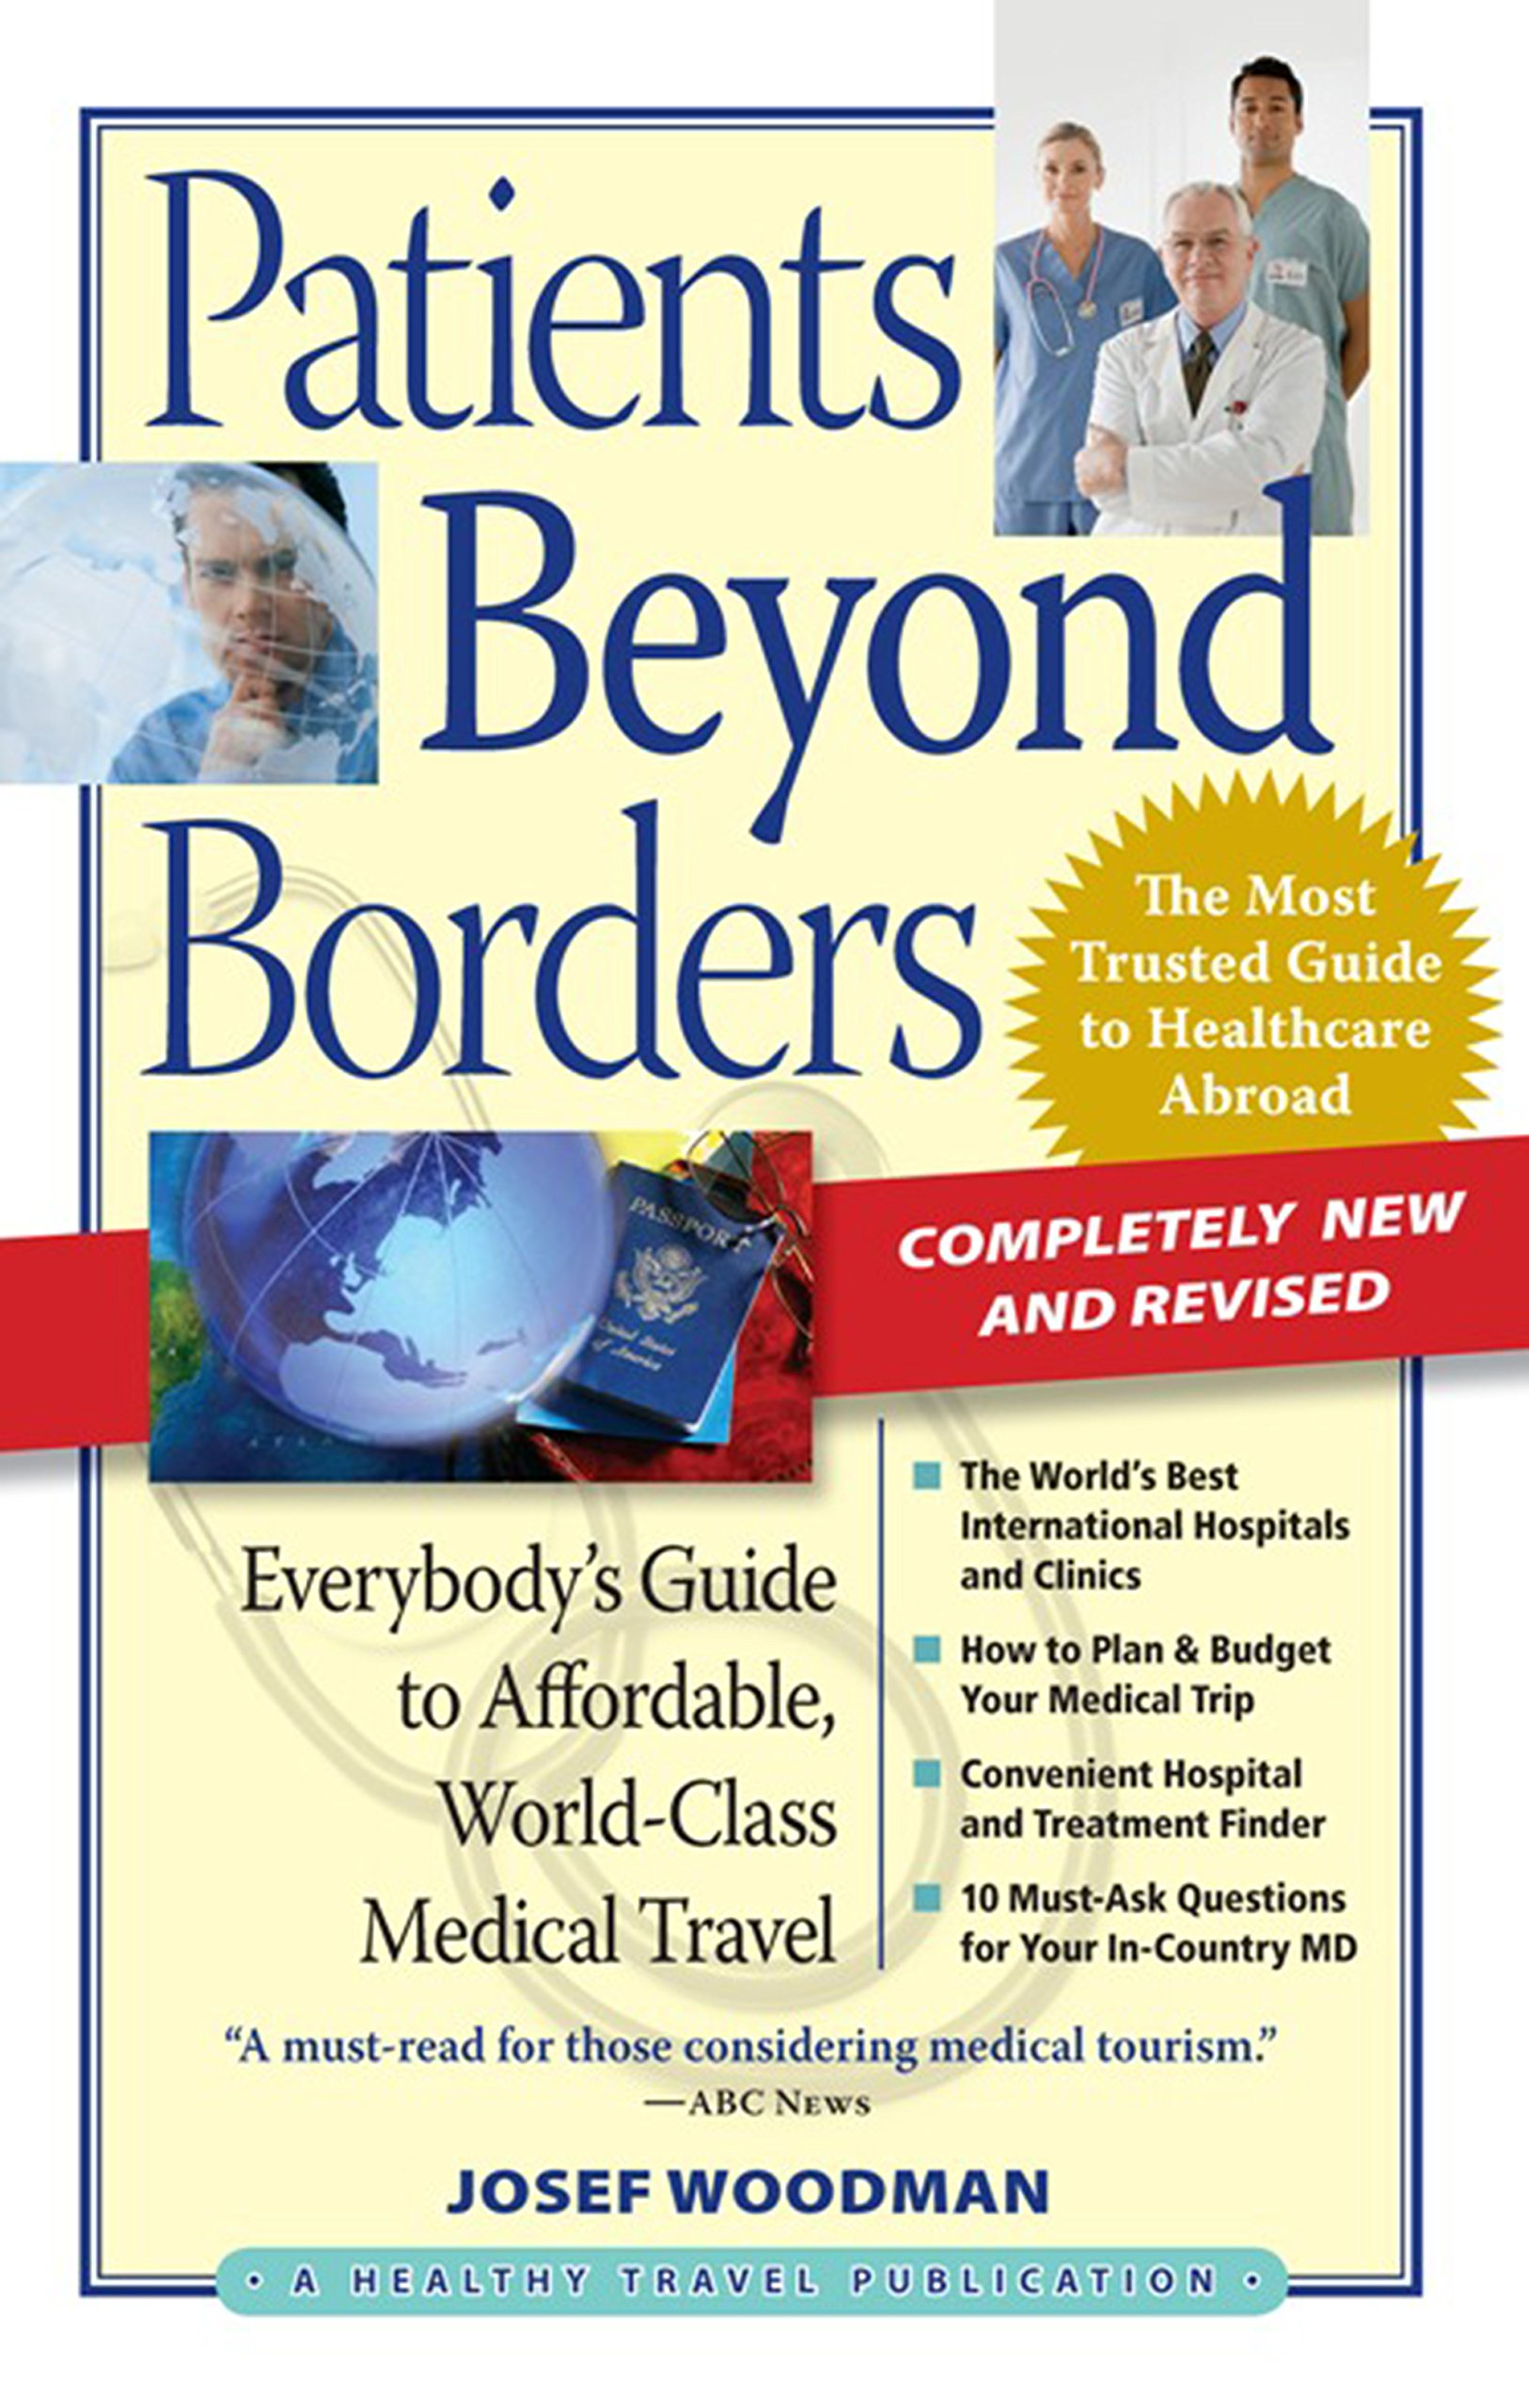 Patients Beyond Borders: Everybodys Guide to Affordable, World-Class Medical Travel: 0 Patients Beyond Borders Medical Travel Guides: Amazon.es: Josef ...